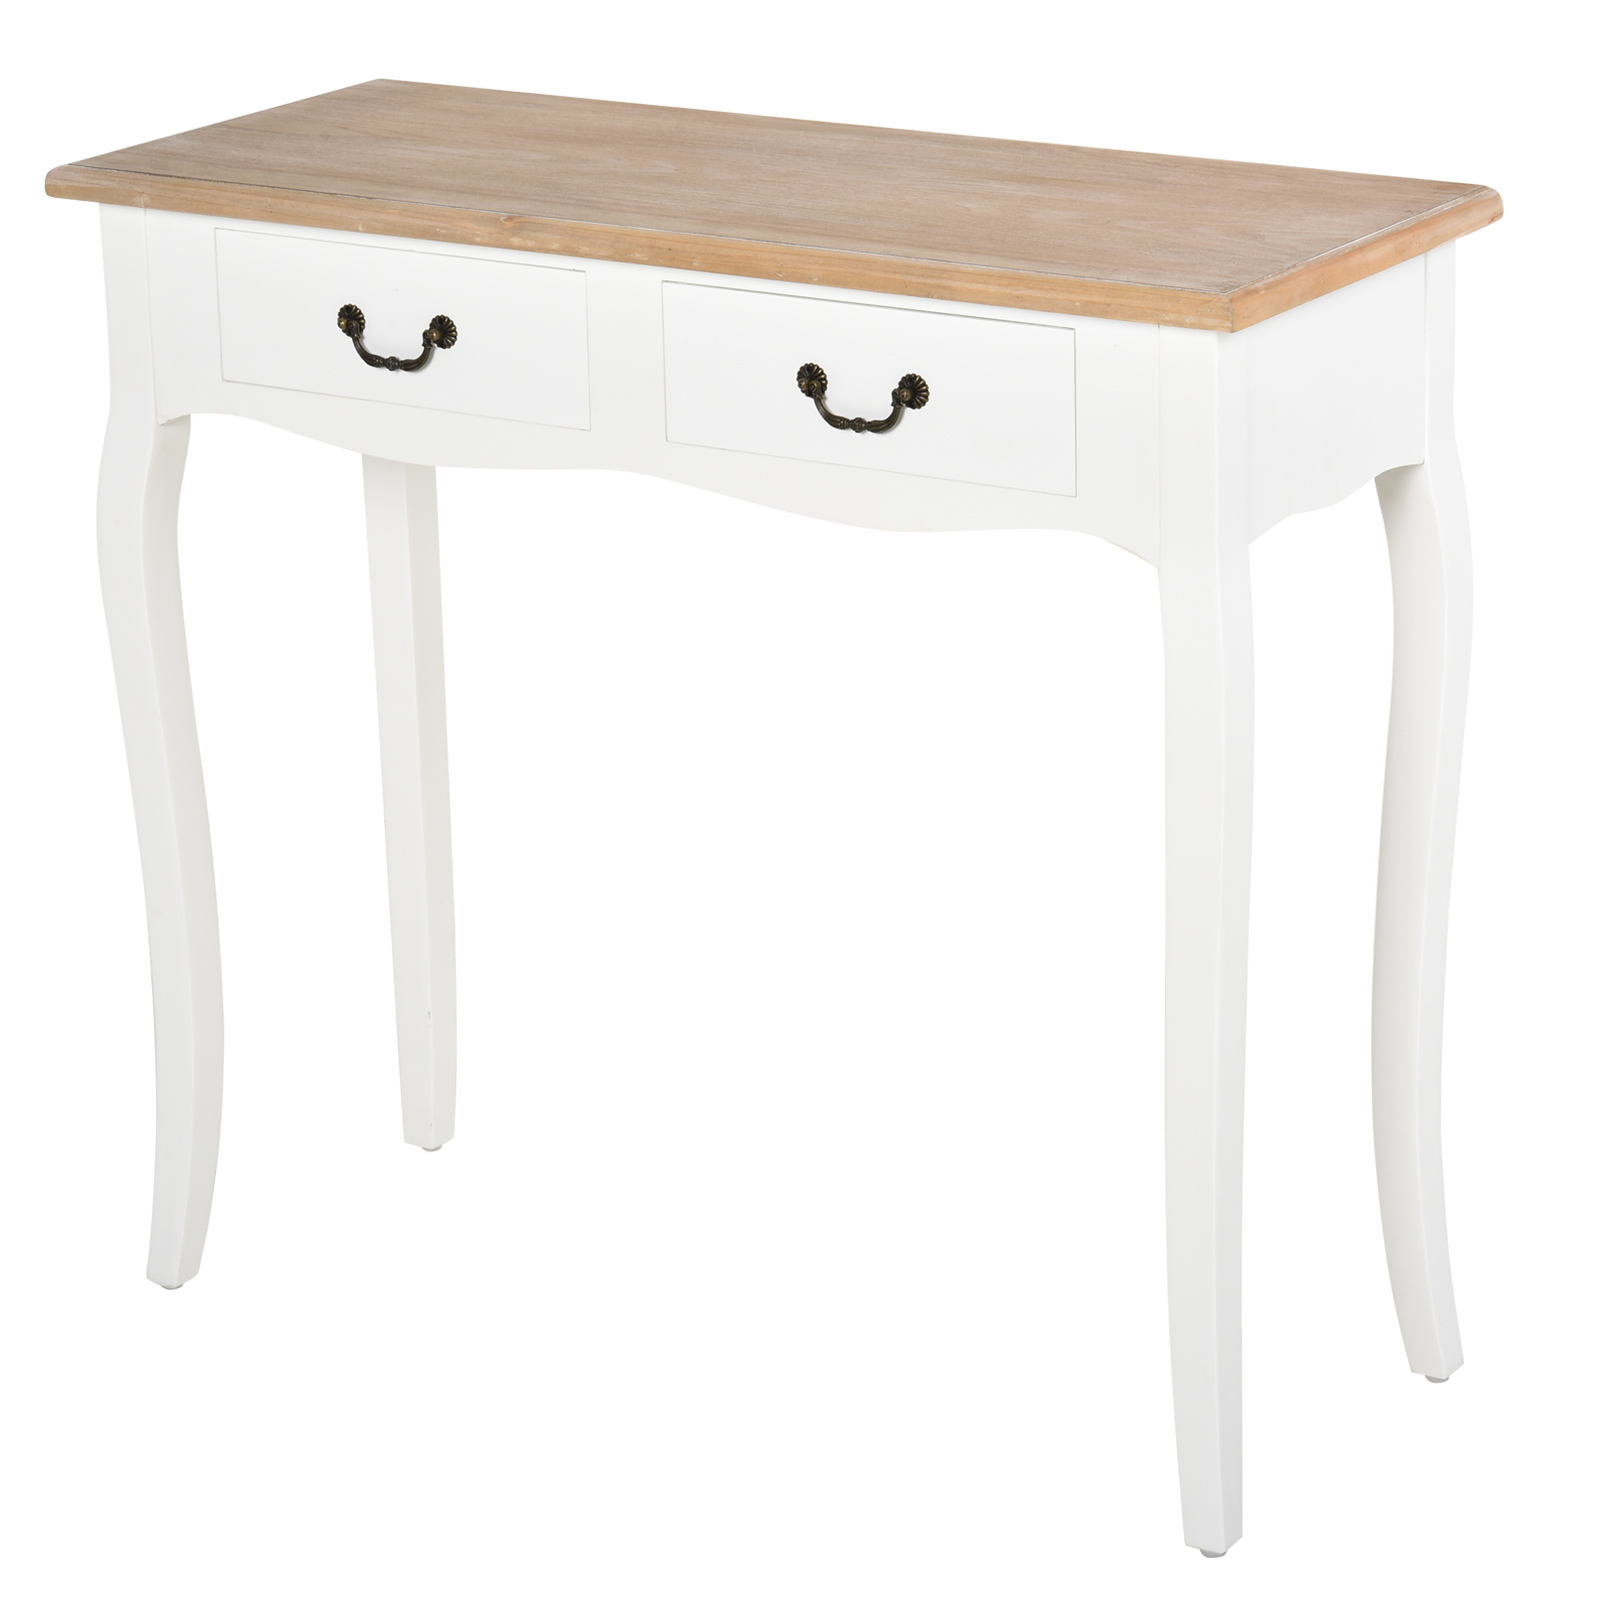 Homcom Entryway Console Table With 2 Convenient Storage Drawers Tabletop For Display Vintage Design White Walmart Com Walmart Com